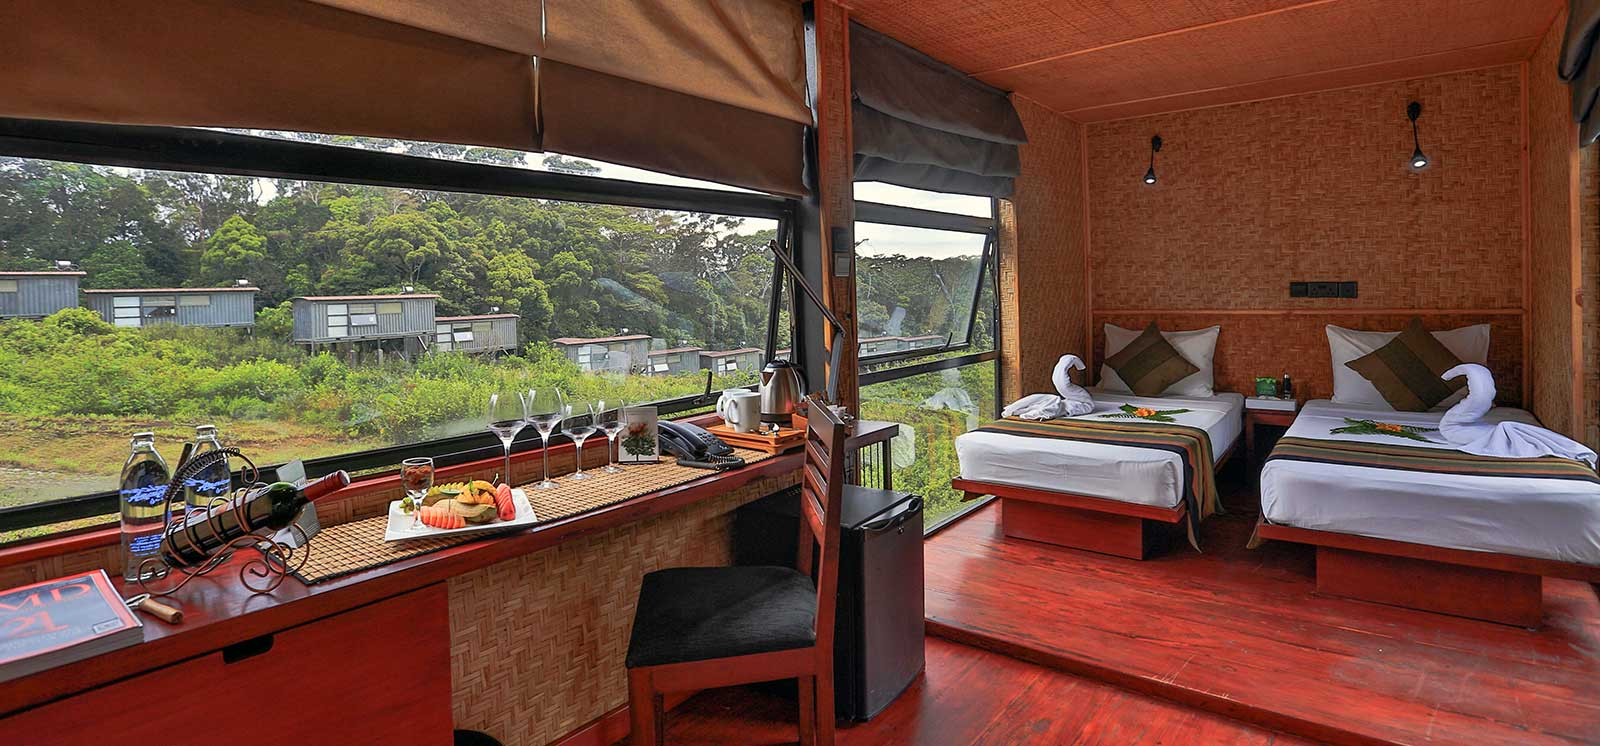 sinharaja hotels the rainforest ecolodge sinharaja. Black Bedroom Furniture Sets. Home Design Ideas